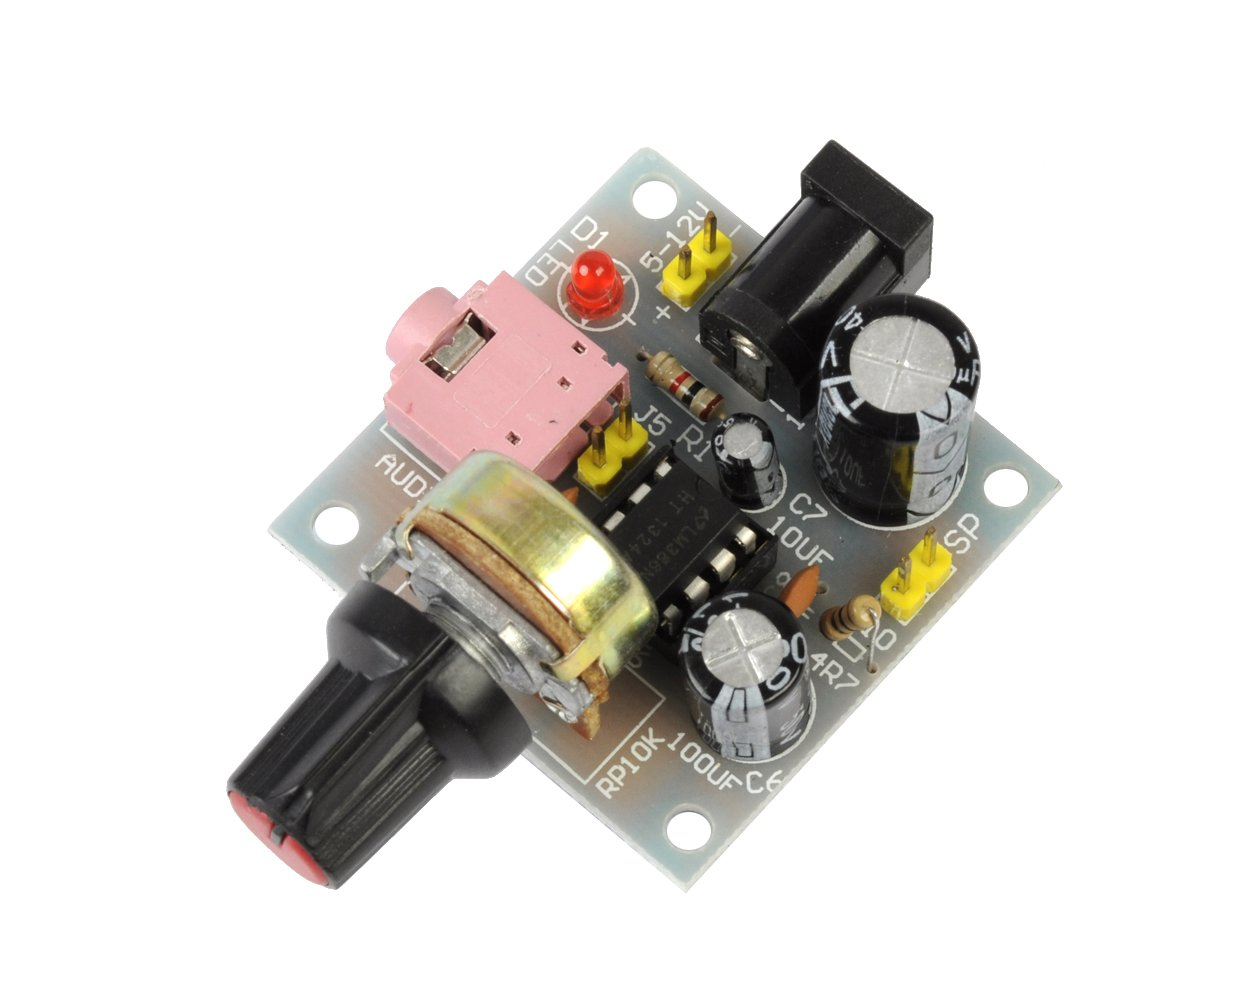 Cheap 12v Dc Audio Amplifier Find Deals On 10w Mini Get Quotations Icstation Lm386 Power Amp Speaker Driver Module 5v To Input